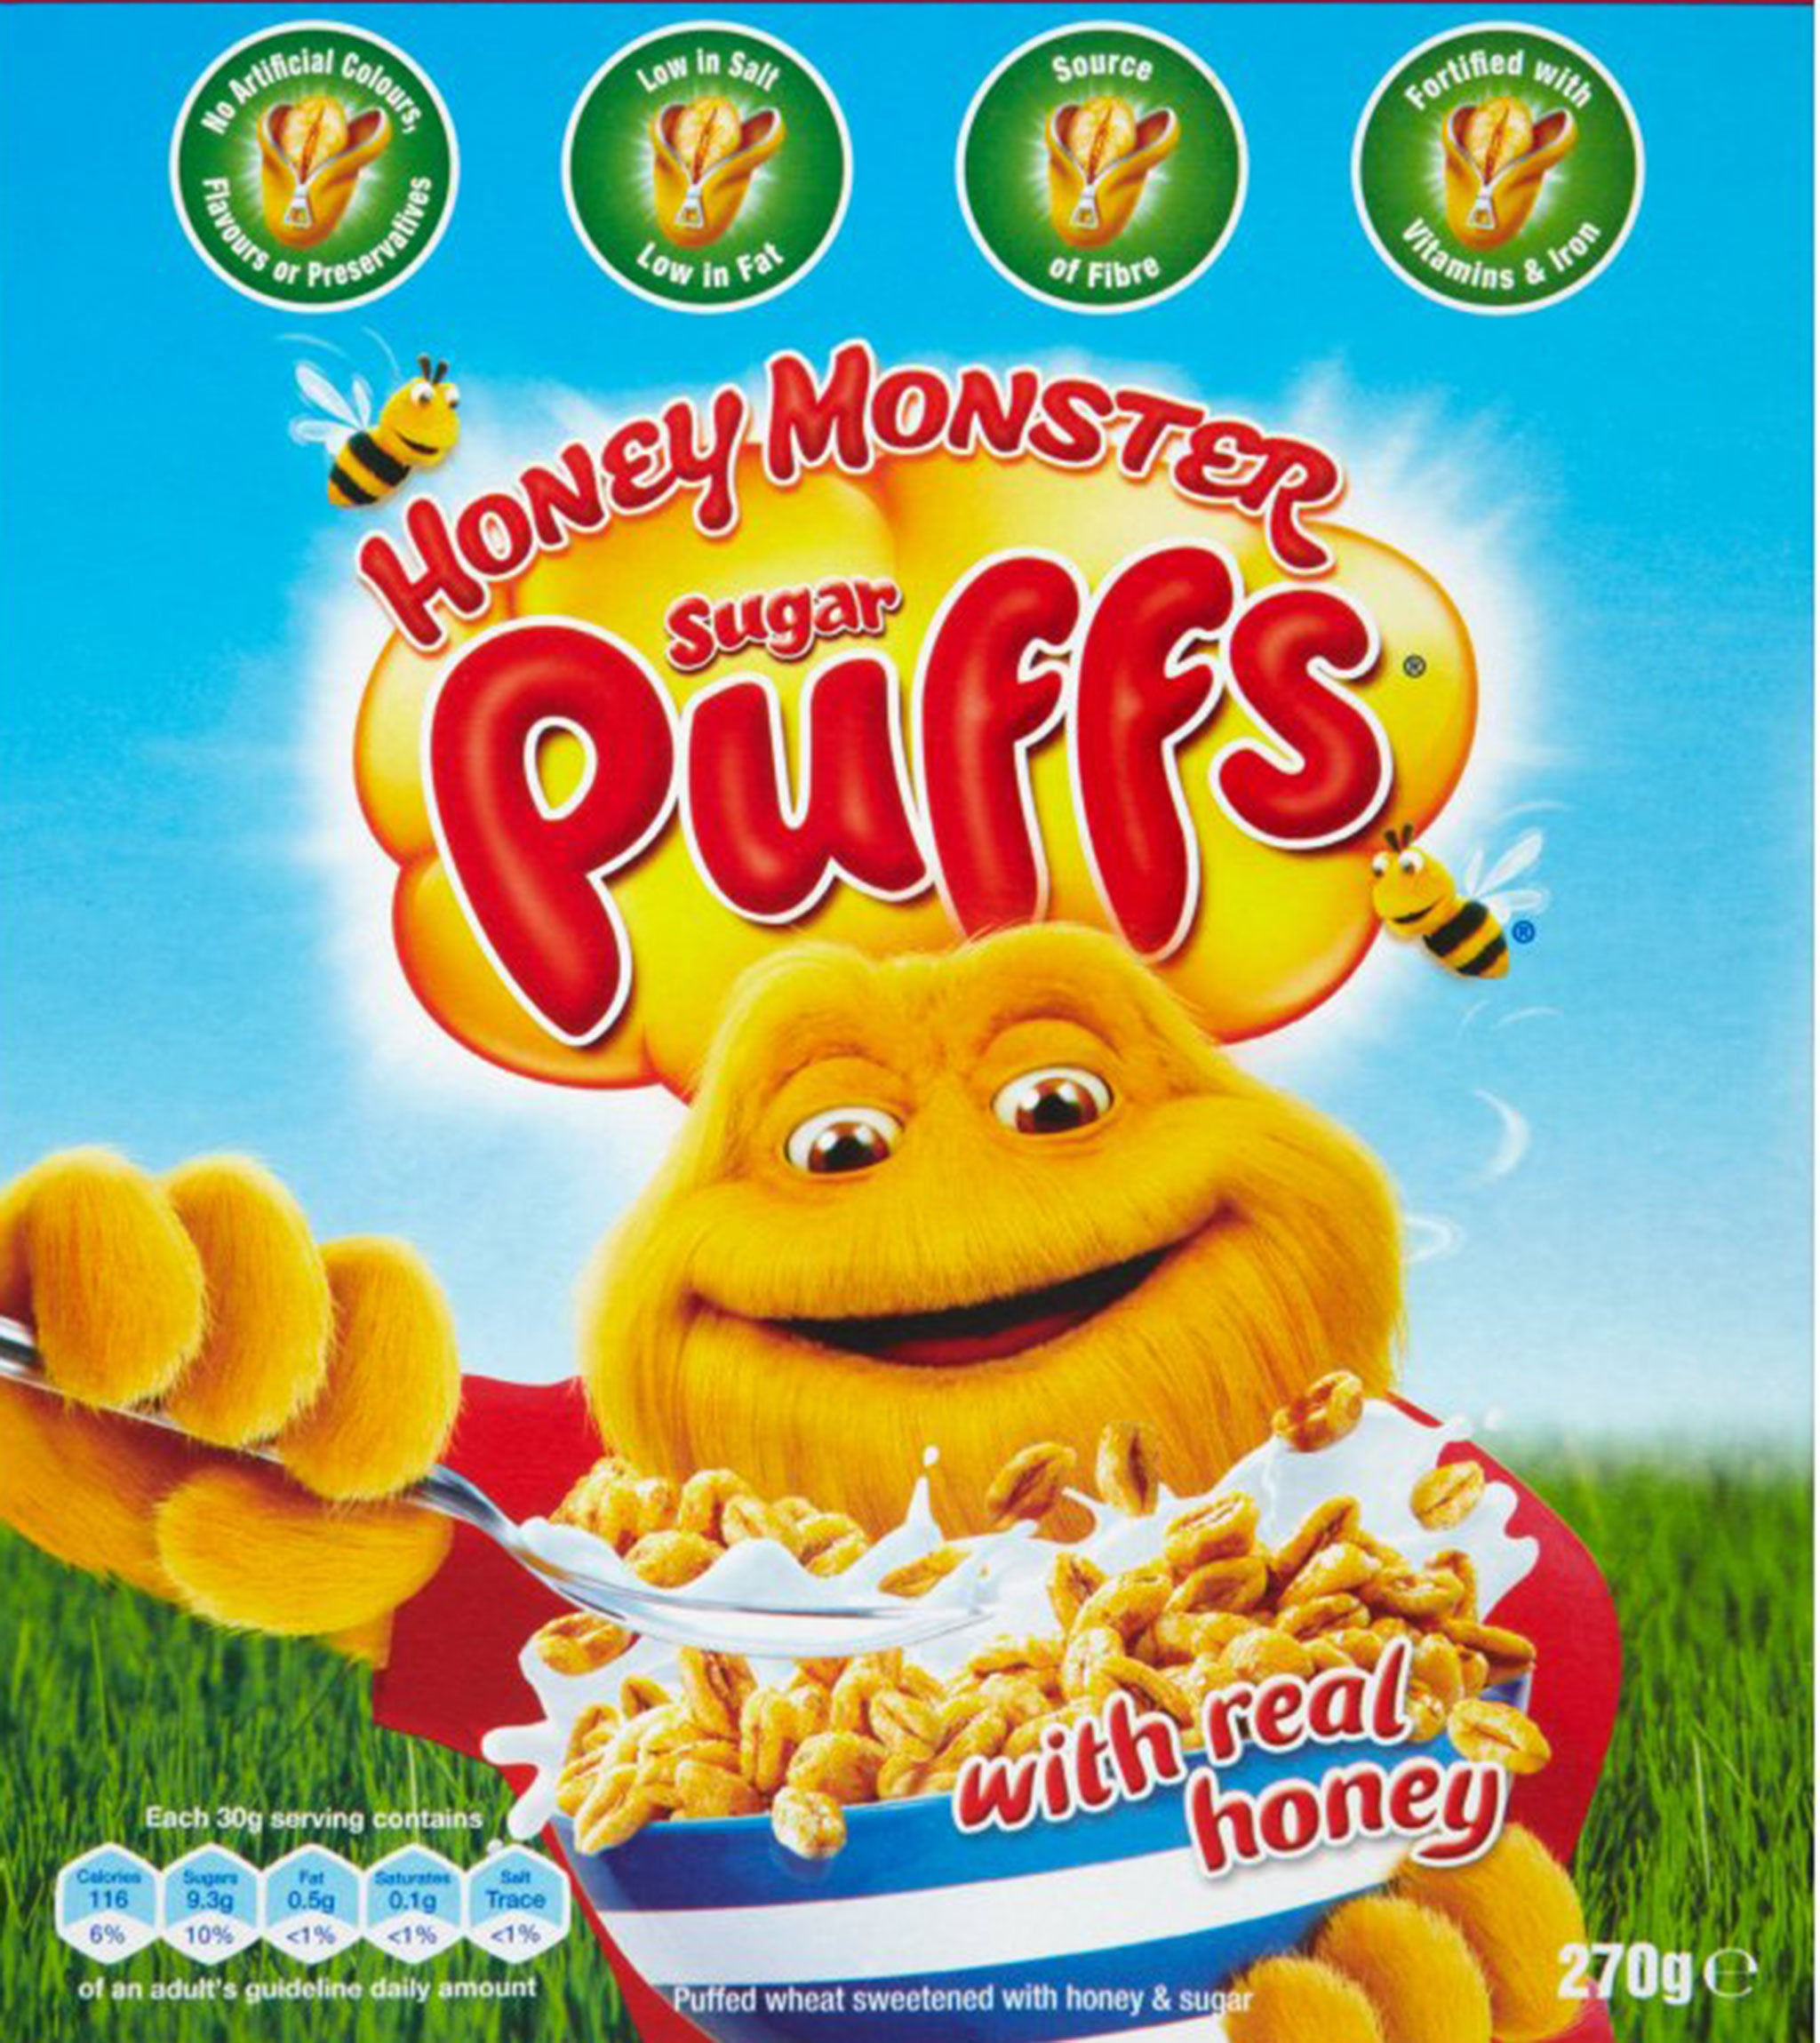 Sugar puffs renamed honey monster puffs to play down association sugar puffs renamed honey monster puffs to play down association with sugar the independent ccuart Choice Image